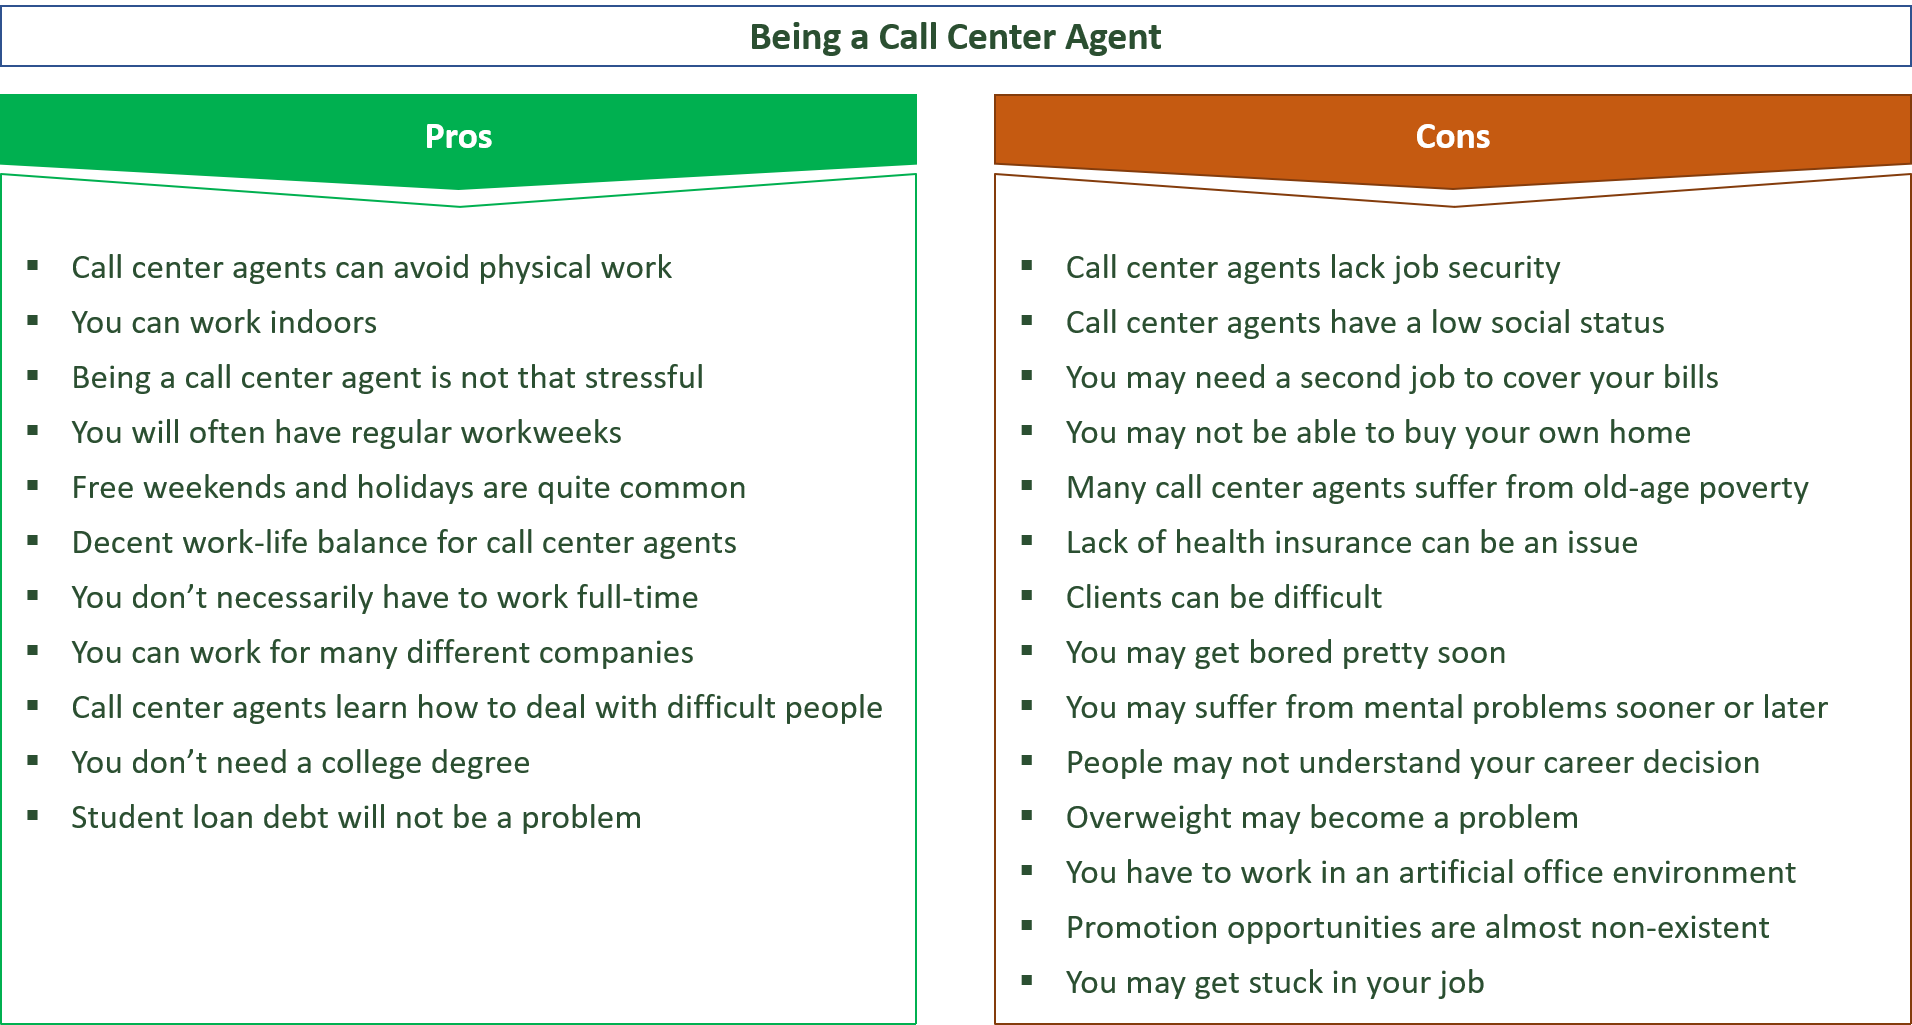 advantages and disadvantages of being a call center agent